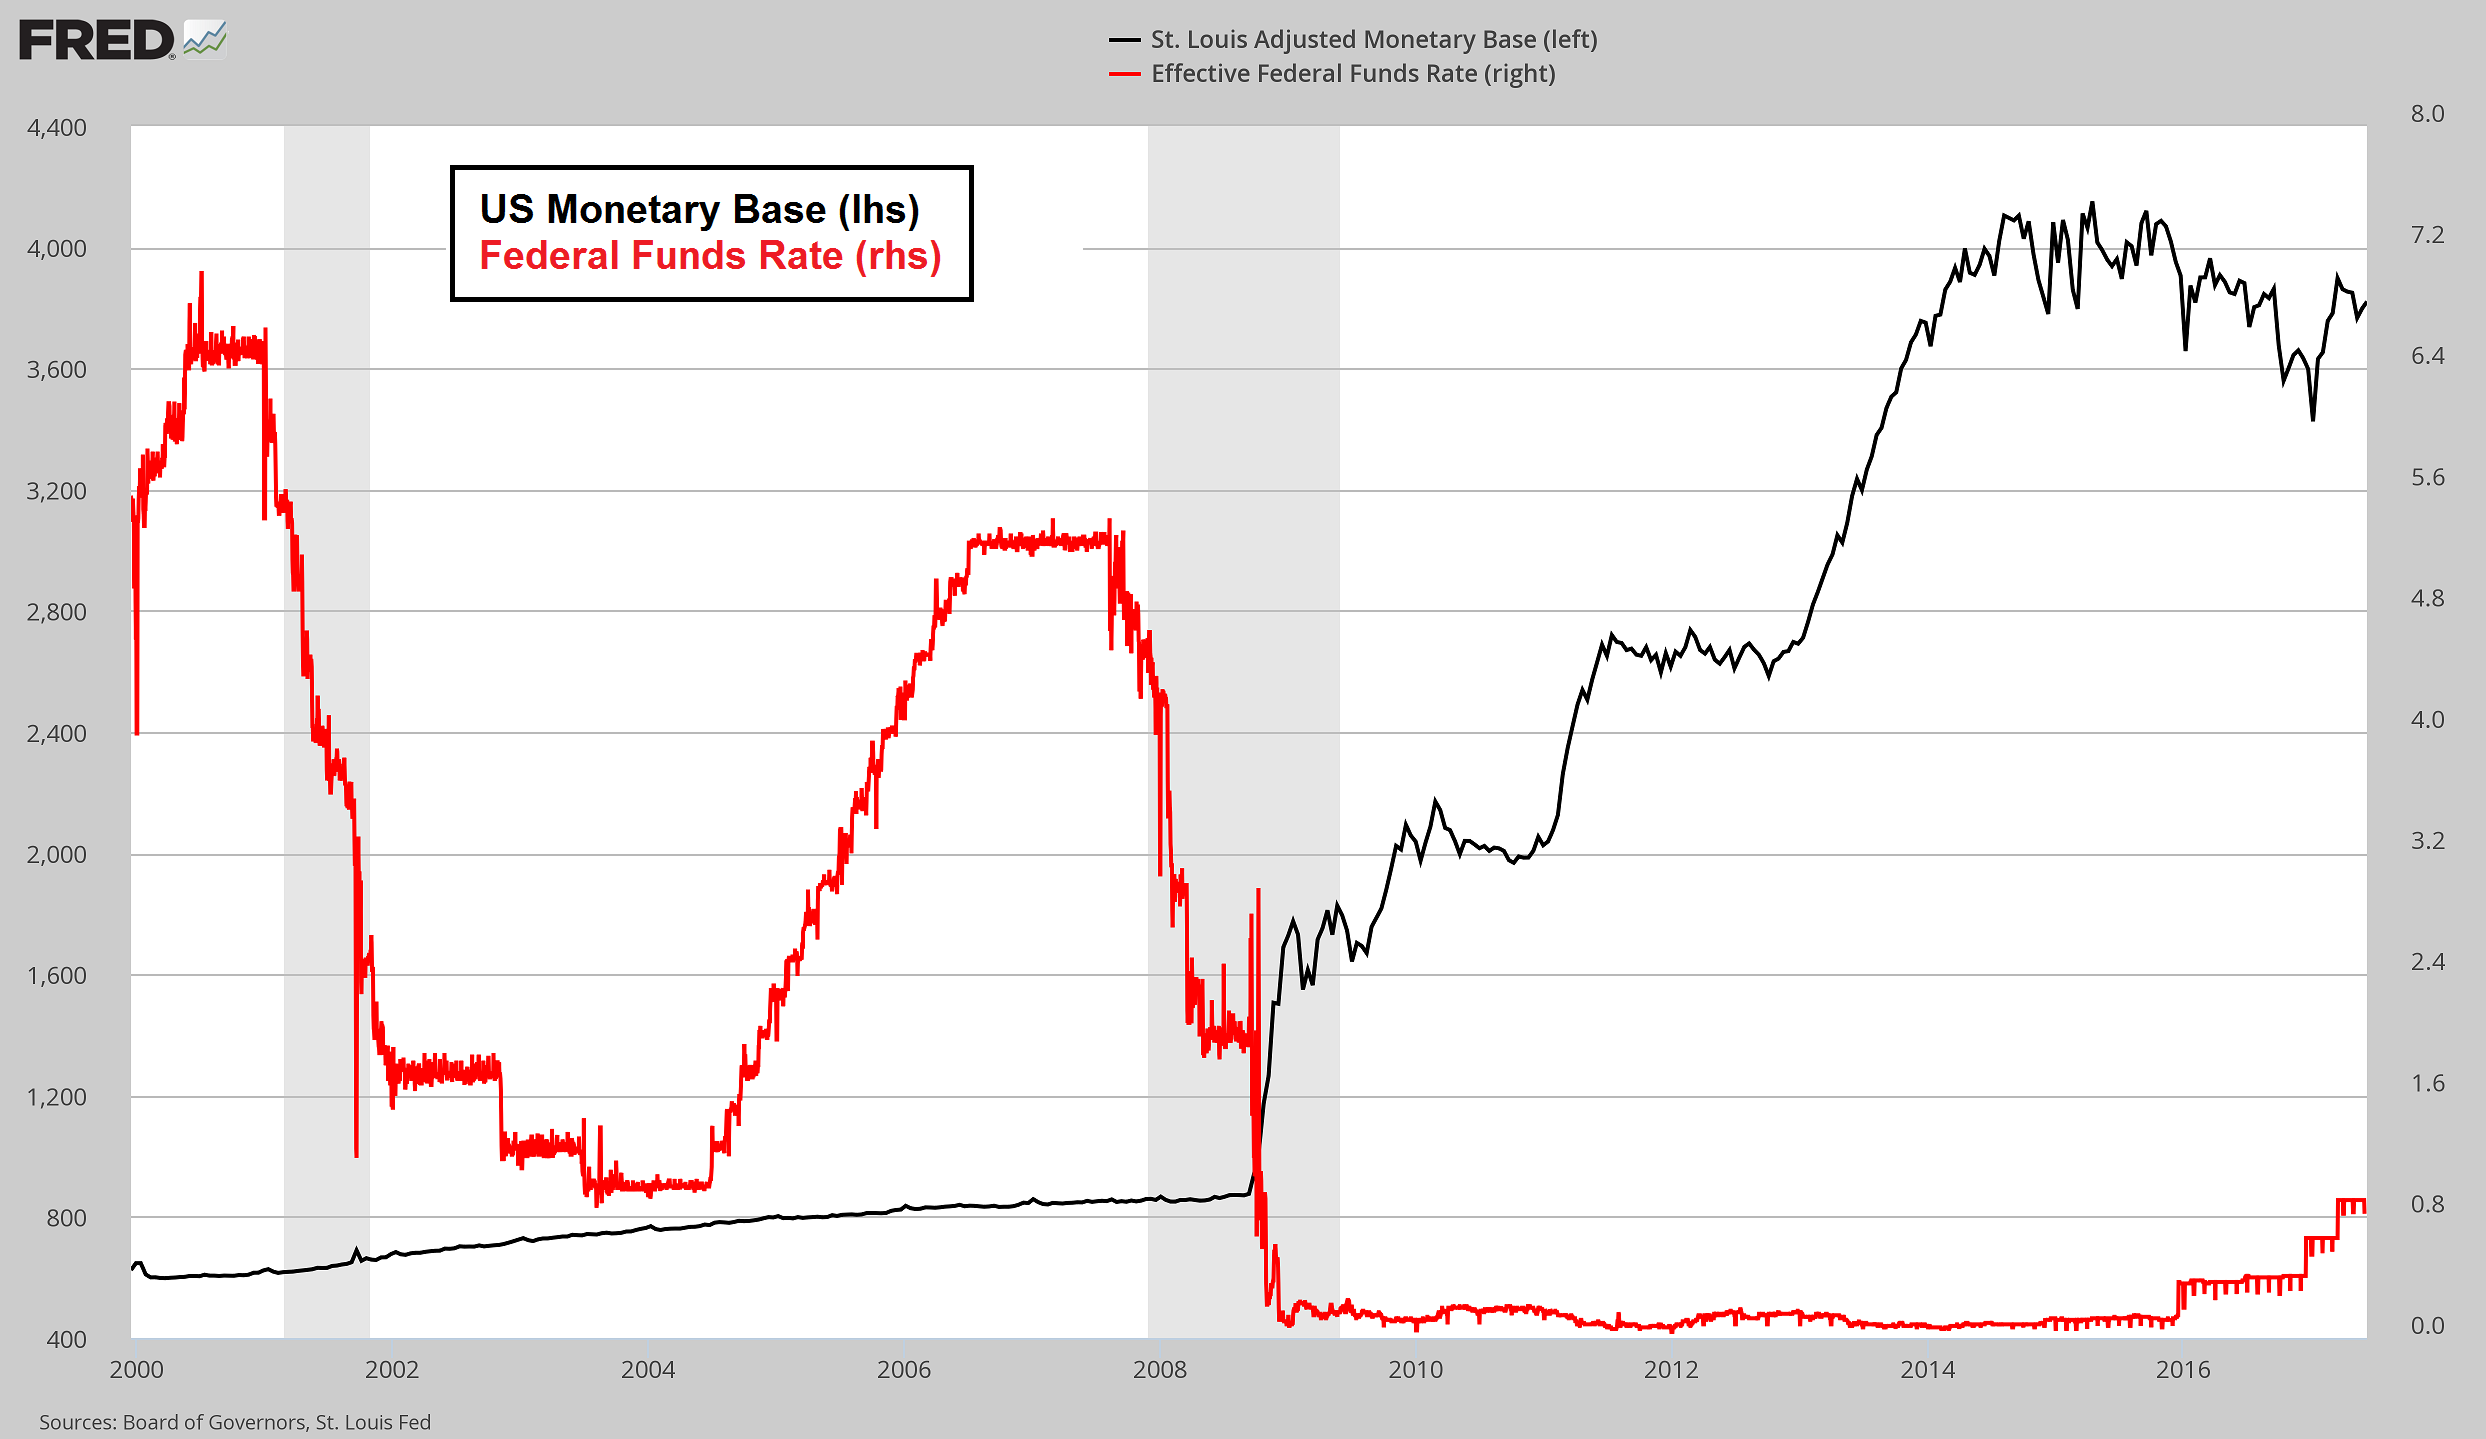 US Monetary Base And Federal Funds Rate, 2000 - 2017